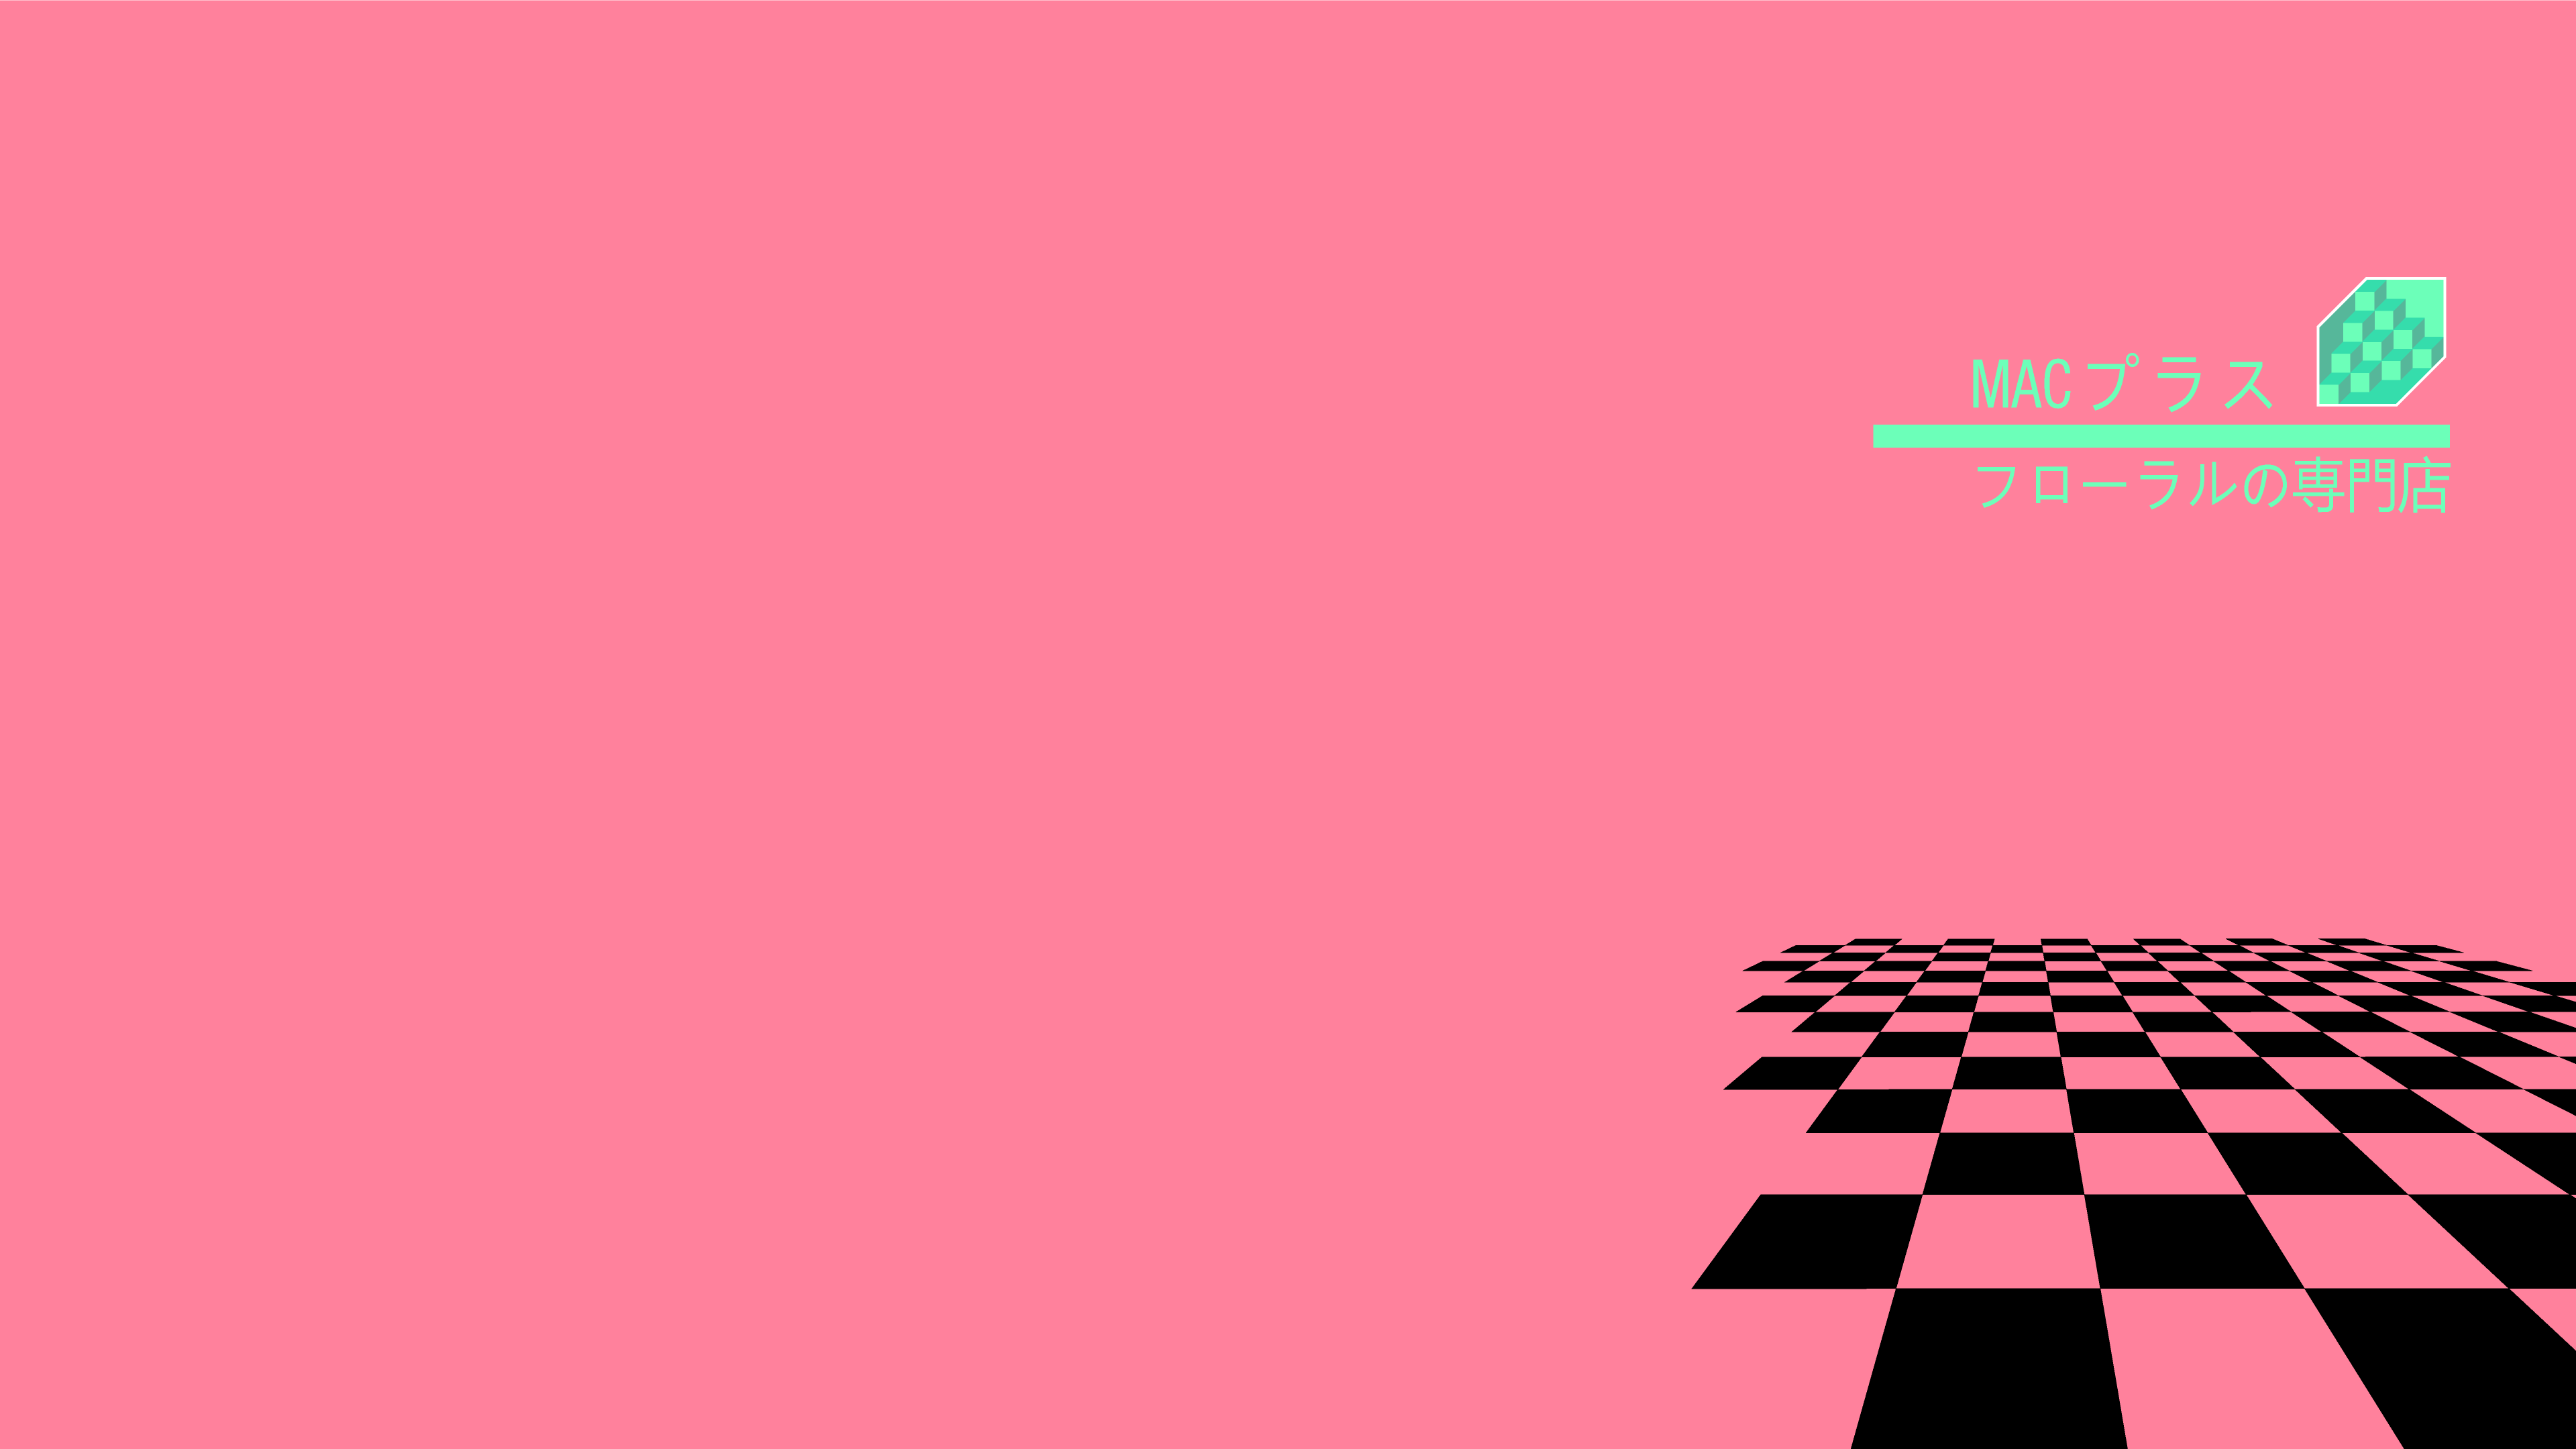 Floral shoppe minimalistic wallpaper